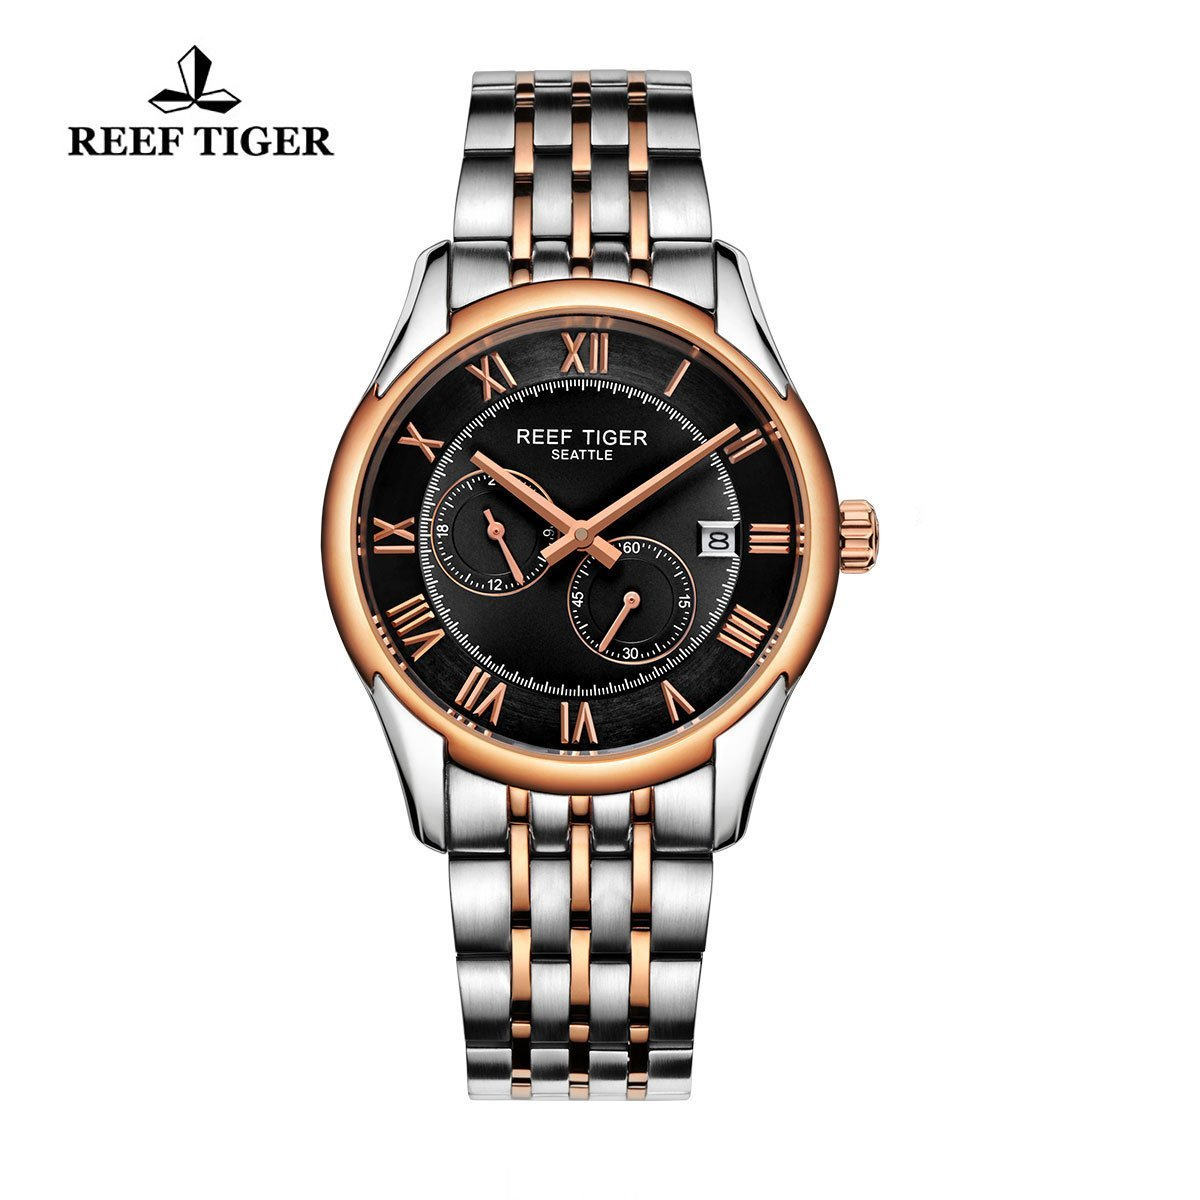 Reef Tiger Business Watches Date Four Hands Rose Gold Steel Black Dial Watch RGA165 by REEF TIGER